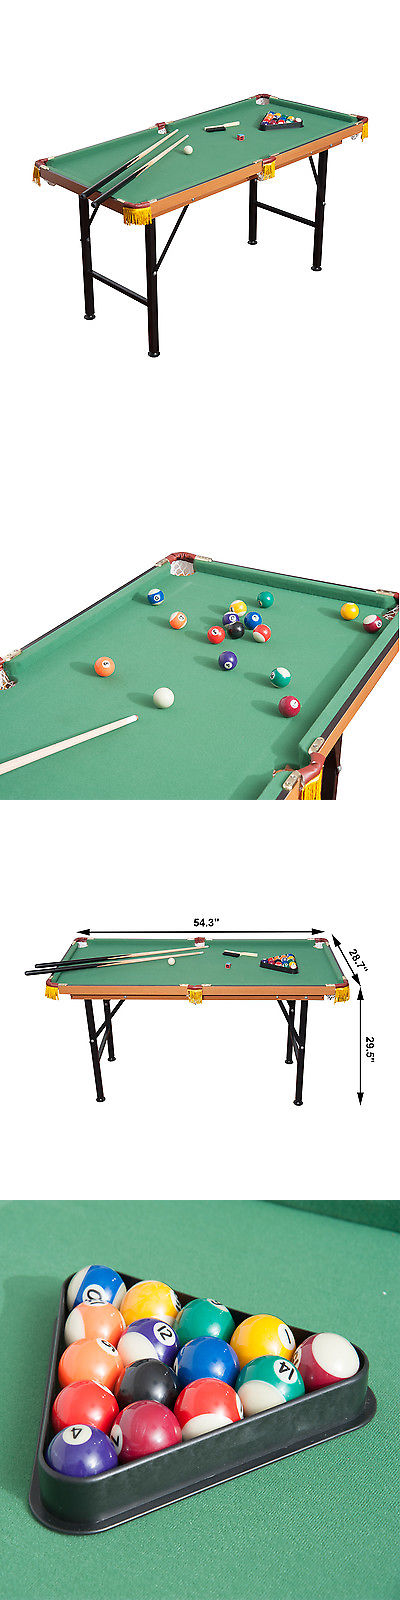 Tables 21213: 4.5Ft Mini Pool Table Portable Tabletop Billiards Board Games  Set Play W